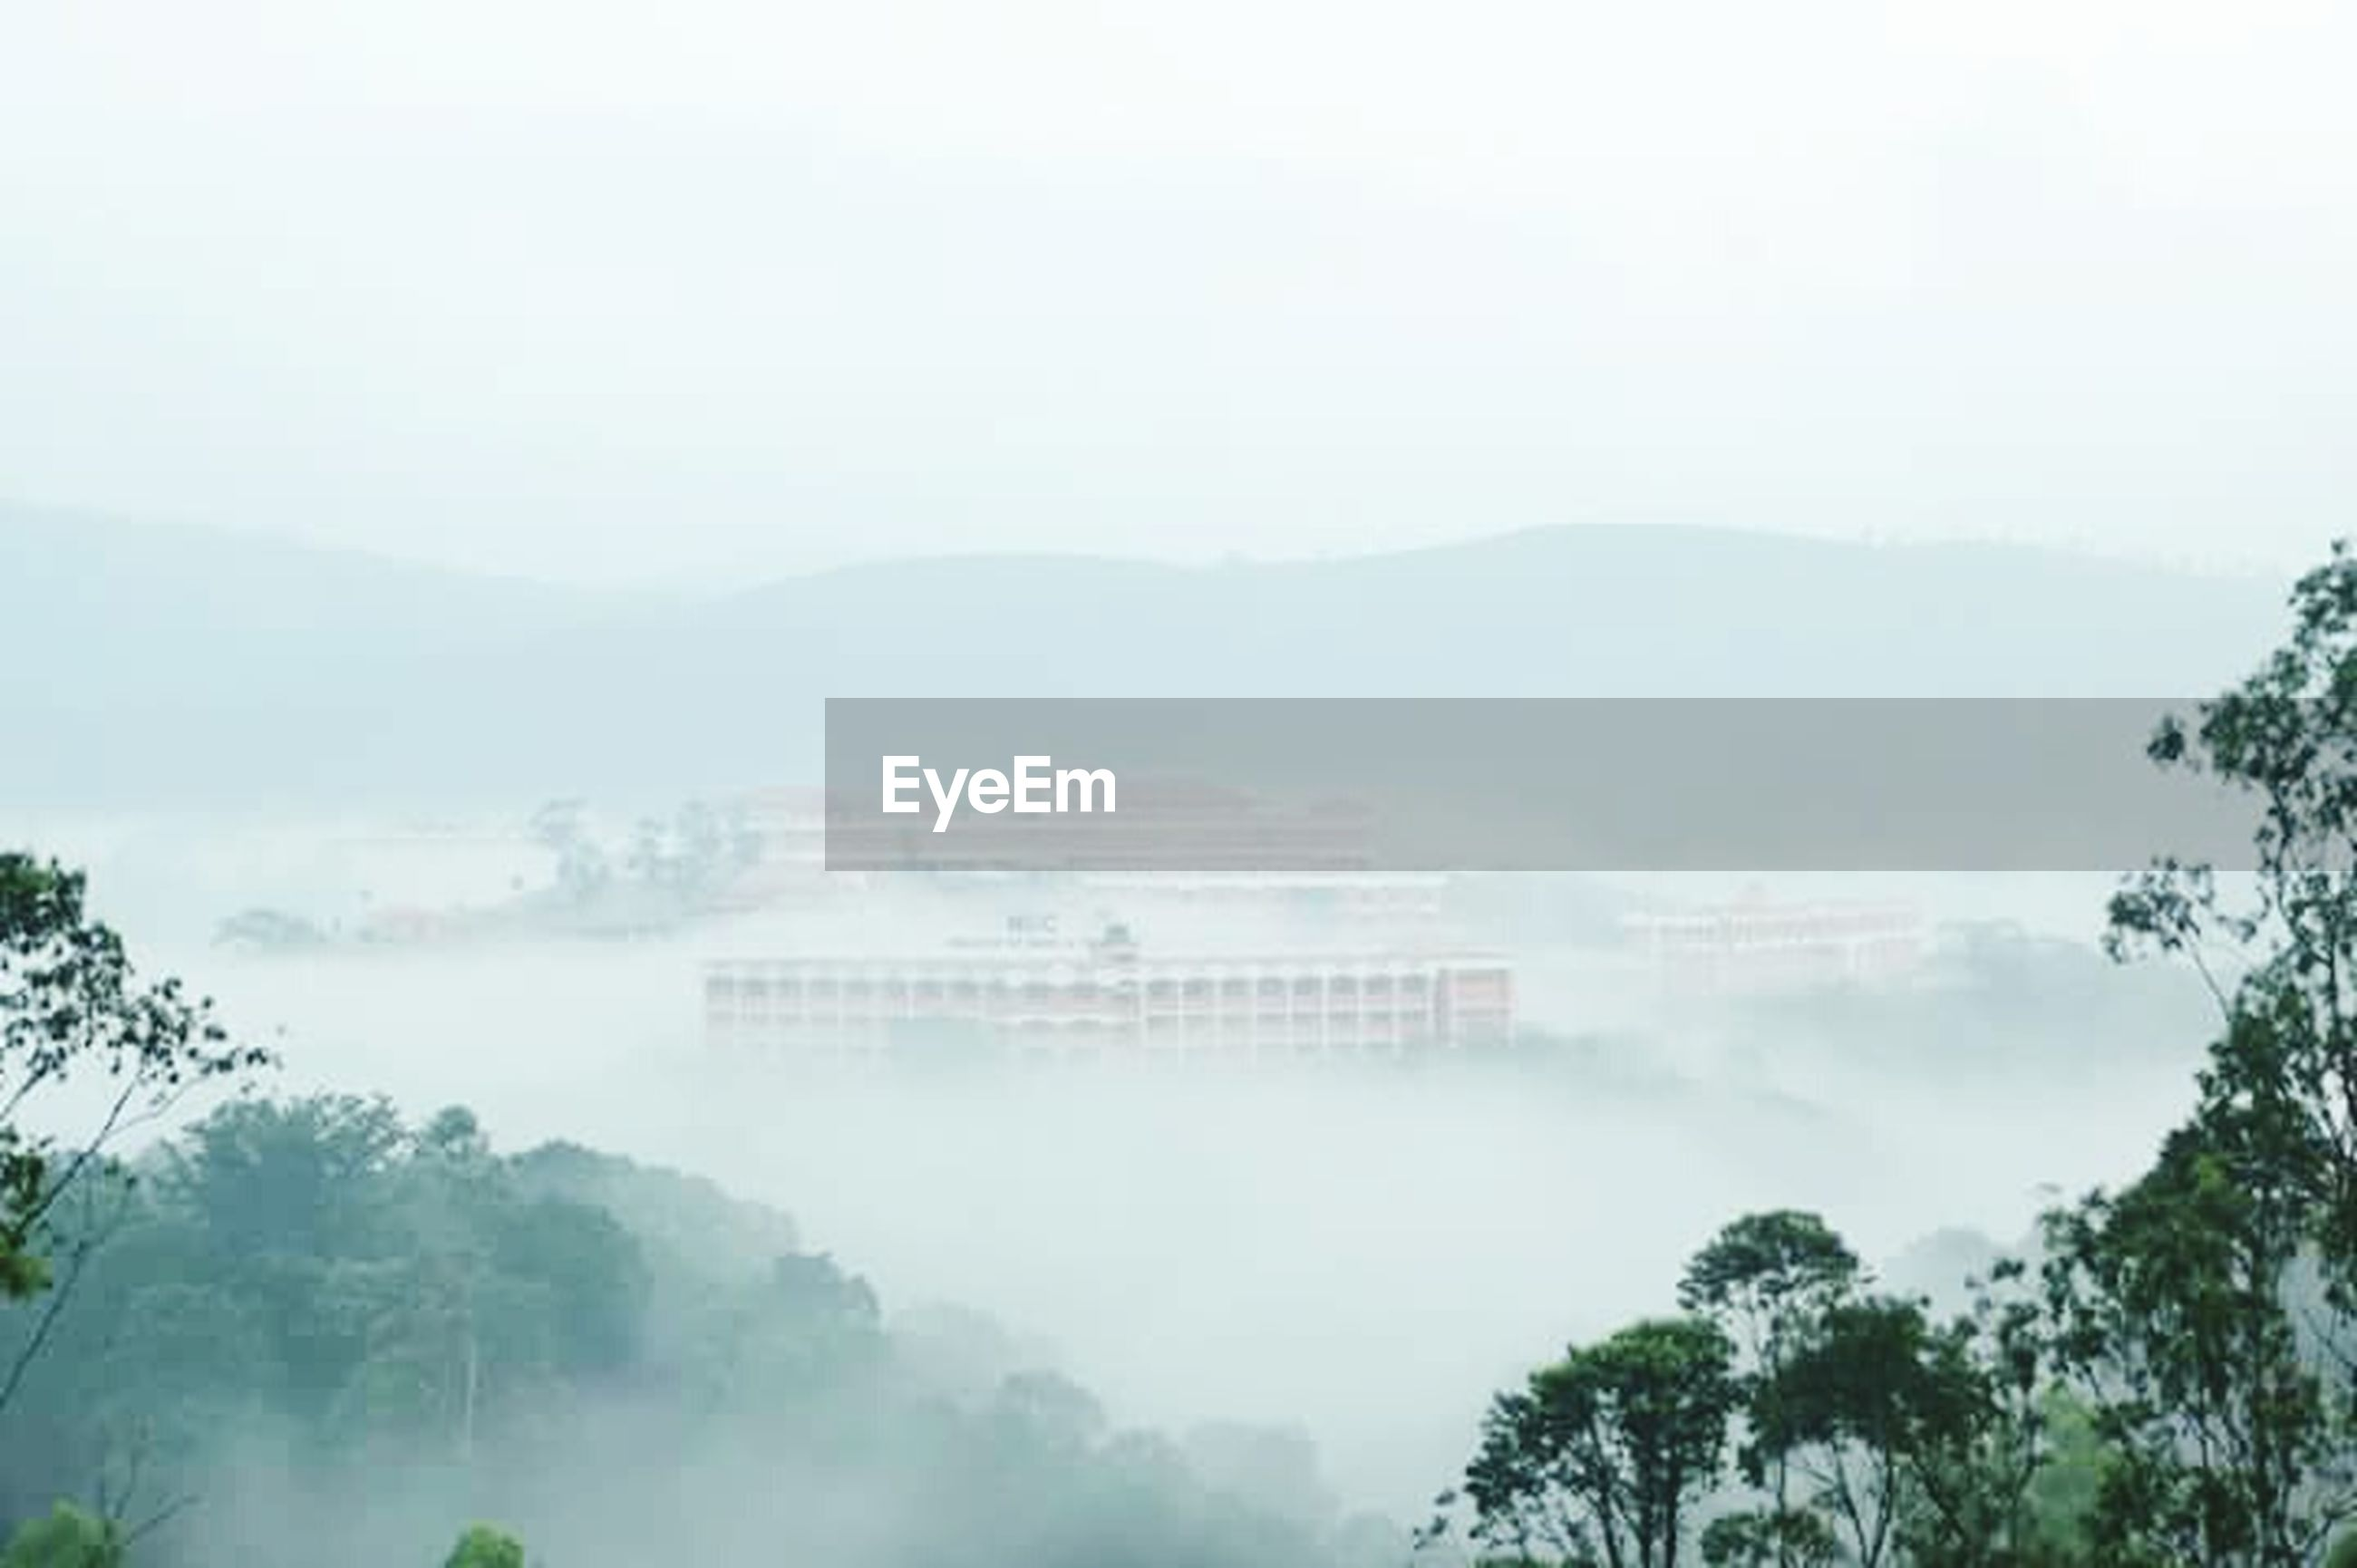 architecture, built structure, tree, building exterior, fog, foggy, mountain, city, sky, high angle view, weather, copy space, nature, day, cityscape, growth, outdoors, no people, travel destinations